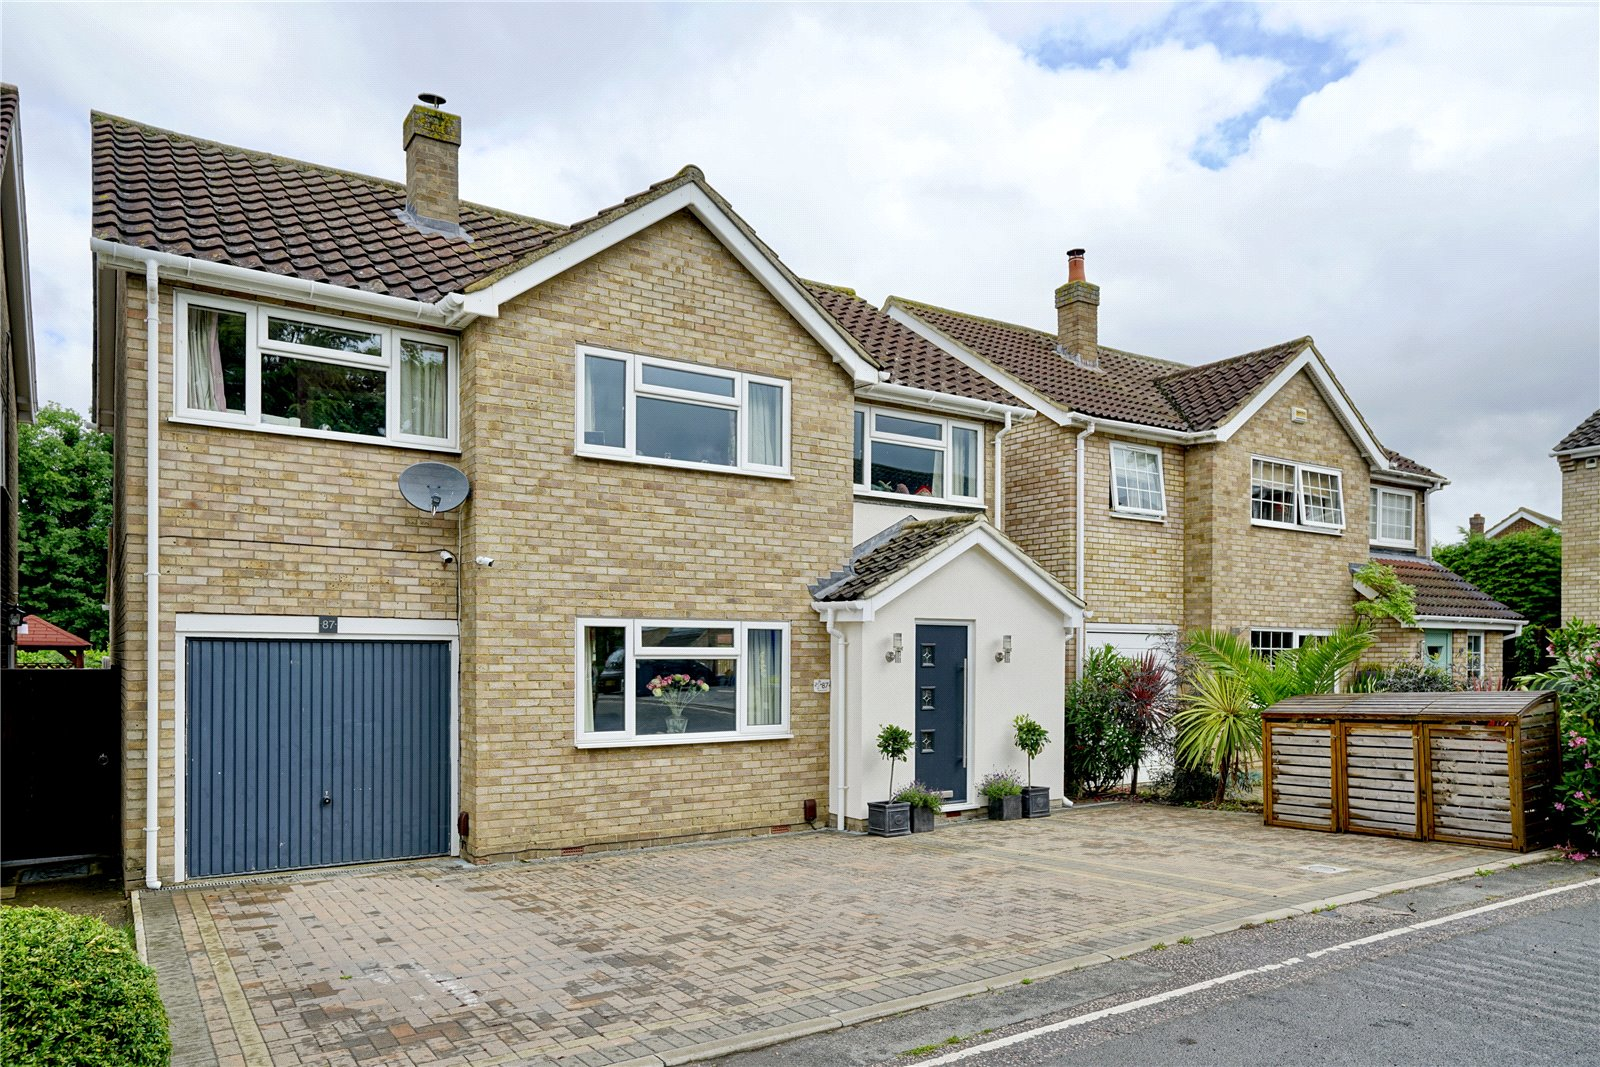 4 bed house for sale in Longsands Road, St. Neots - Property Image 1